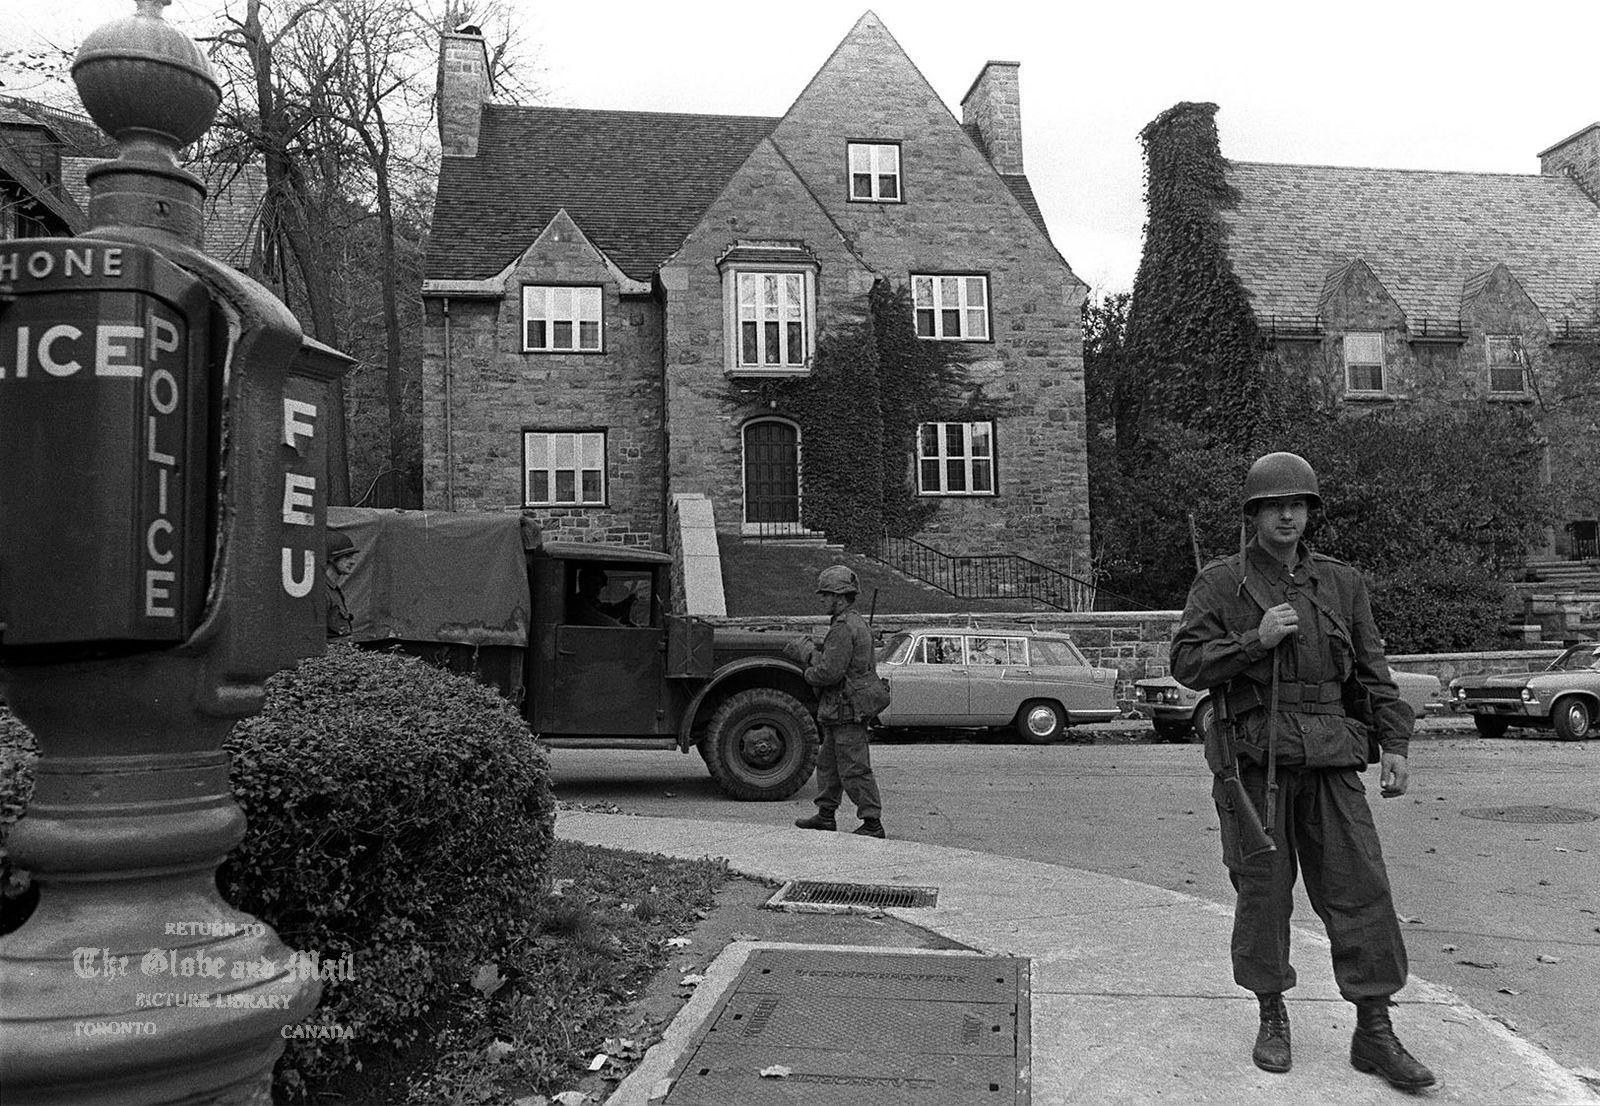 The notes transcribed from the back of this photograph are as follows: FILE--Soldiers take over guard duty, Oct. 16, 1970 at the Montreal home of British Trade Commissioner James Cross, one of the two political hostages whose kidnapping by the FLQ has brought on the use of the war emergency act measures in Canada, never before used during peace. (CP PICTURE ARCHIVE)